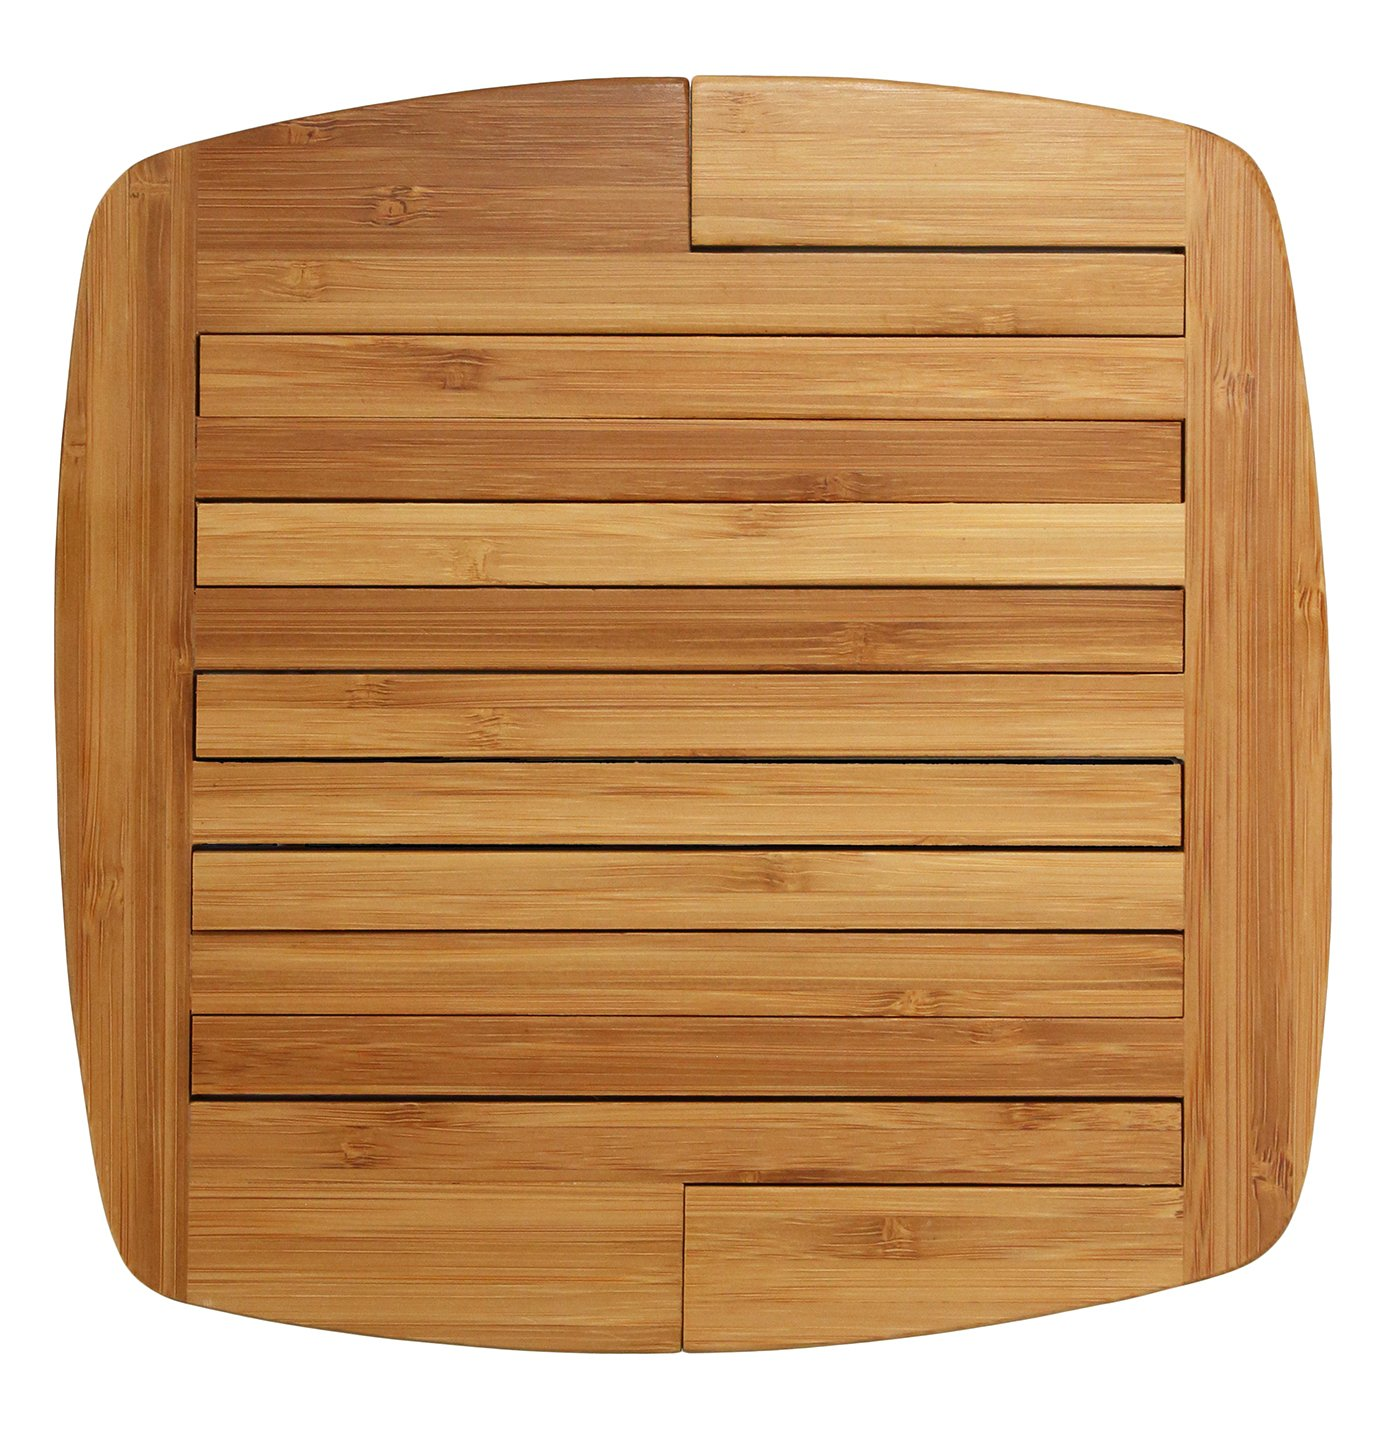 Totally Bamboo Expandable Trivet; Heat Resistant, Durable and Beautiful Round Wood Trivet Helps Protect Tabletops & Counters in Style, 11 3/4'' by 8 3/4'' open, 8 3/4'' by 8 3/4'' closed; Designed in USA